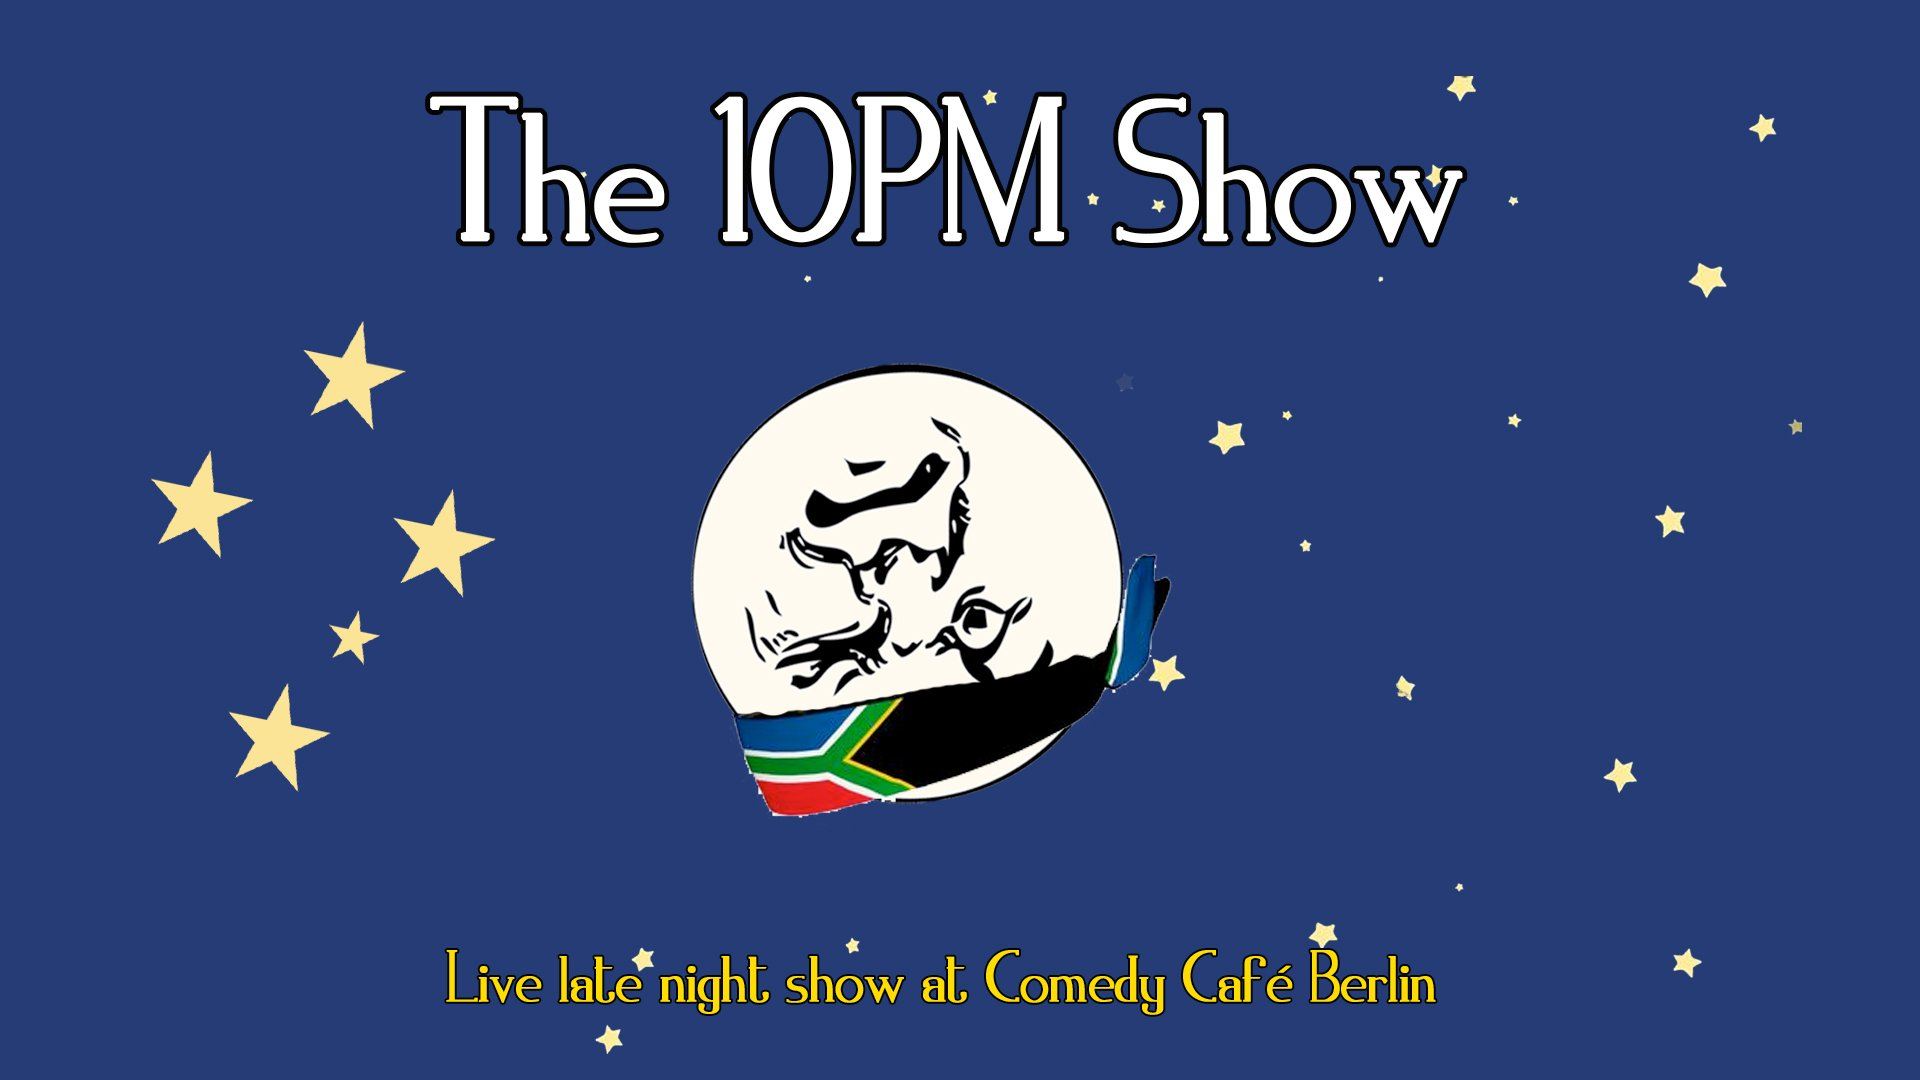 The 10pm Show with Ian Mbelle